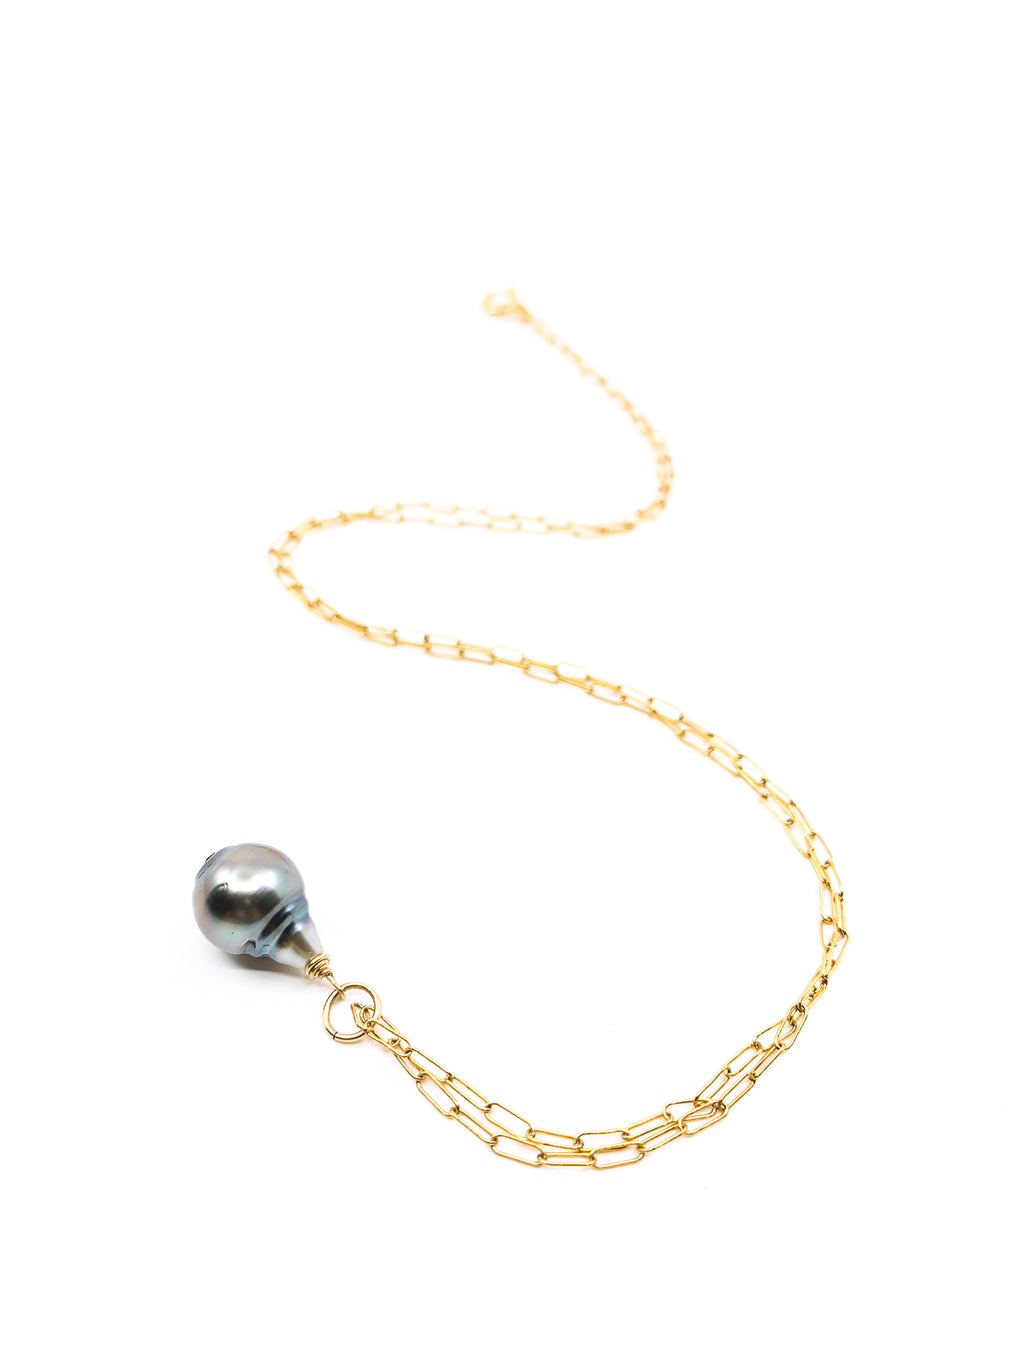 simple tahitian pearl gold necklace by eve black jewelry made in Hawaii